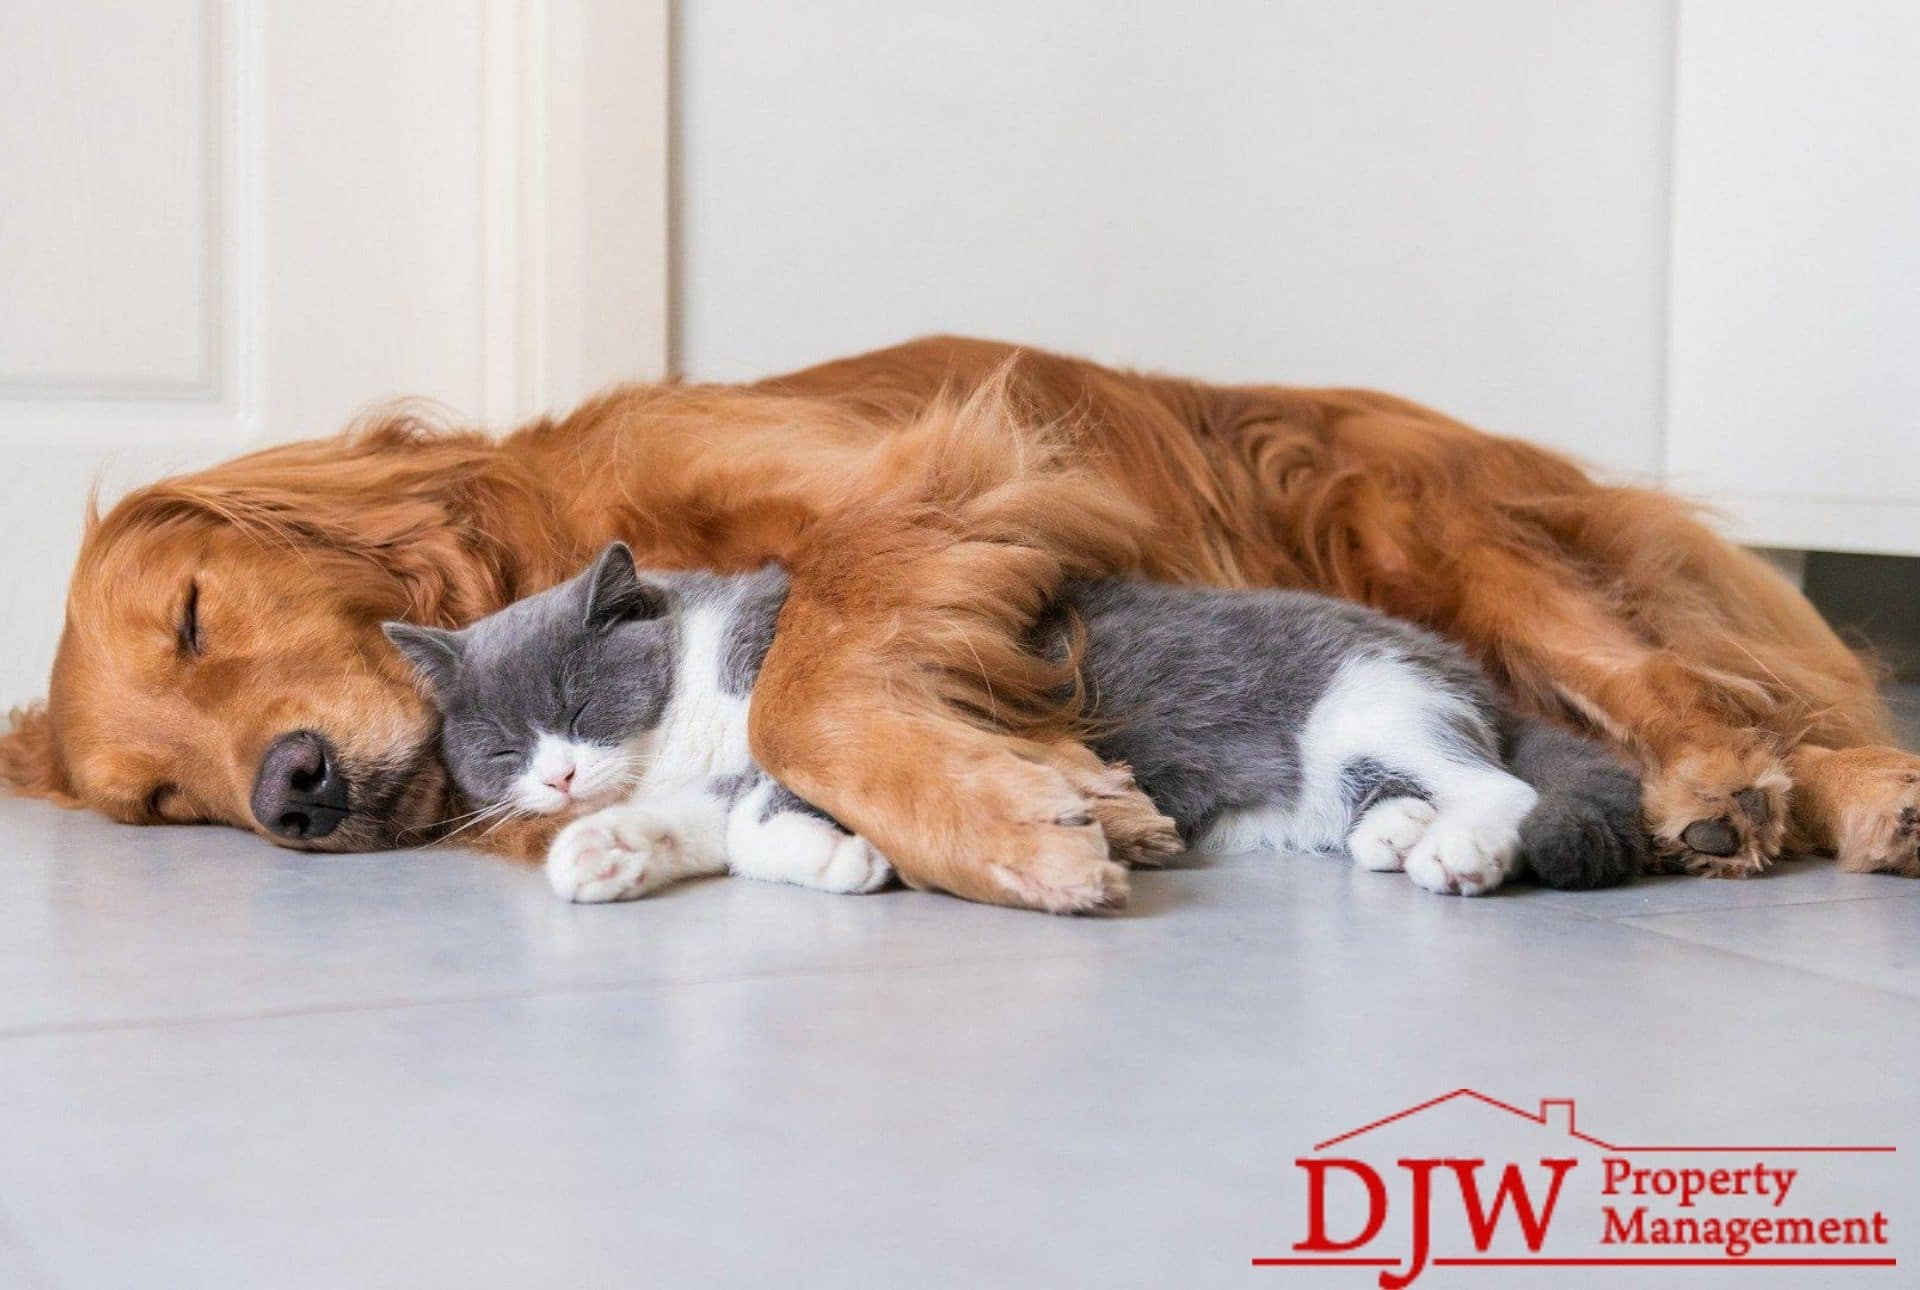 A golden retriever snuggles with a grey and white house cat.